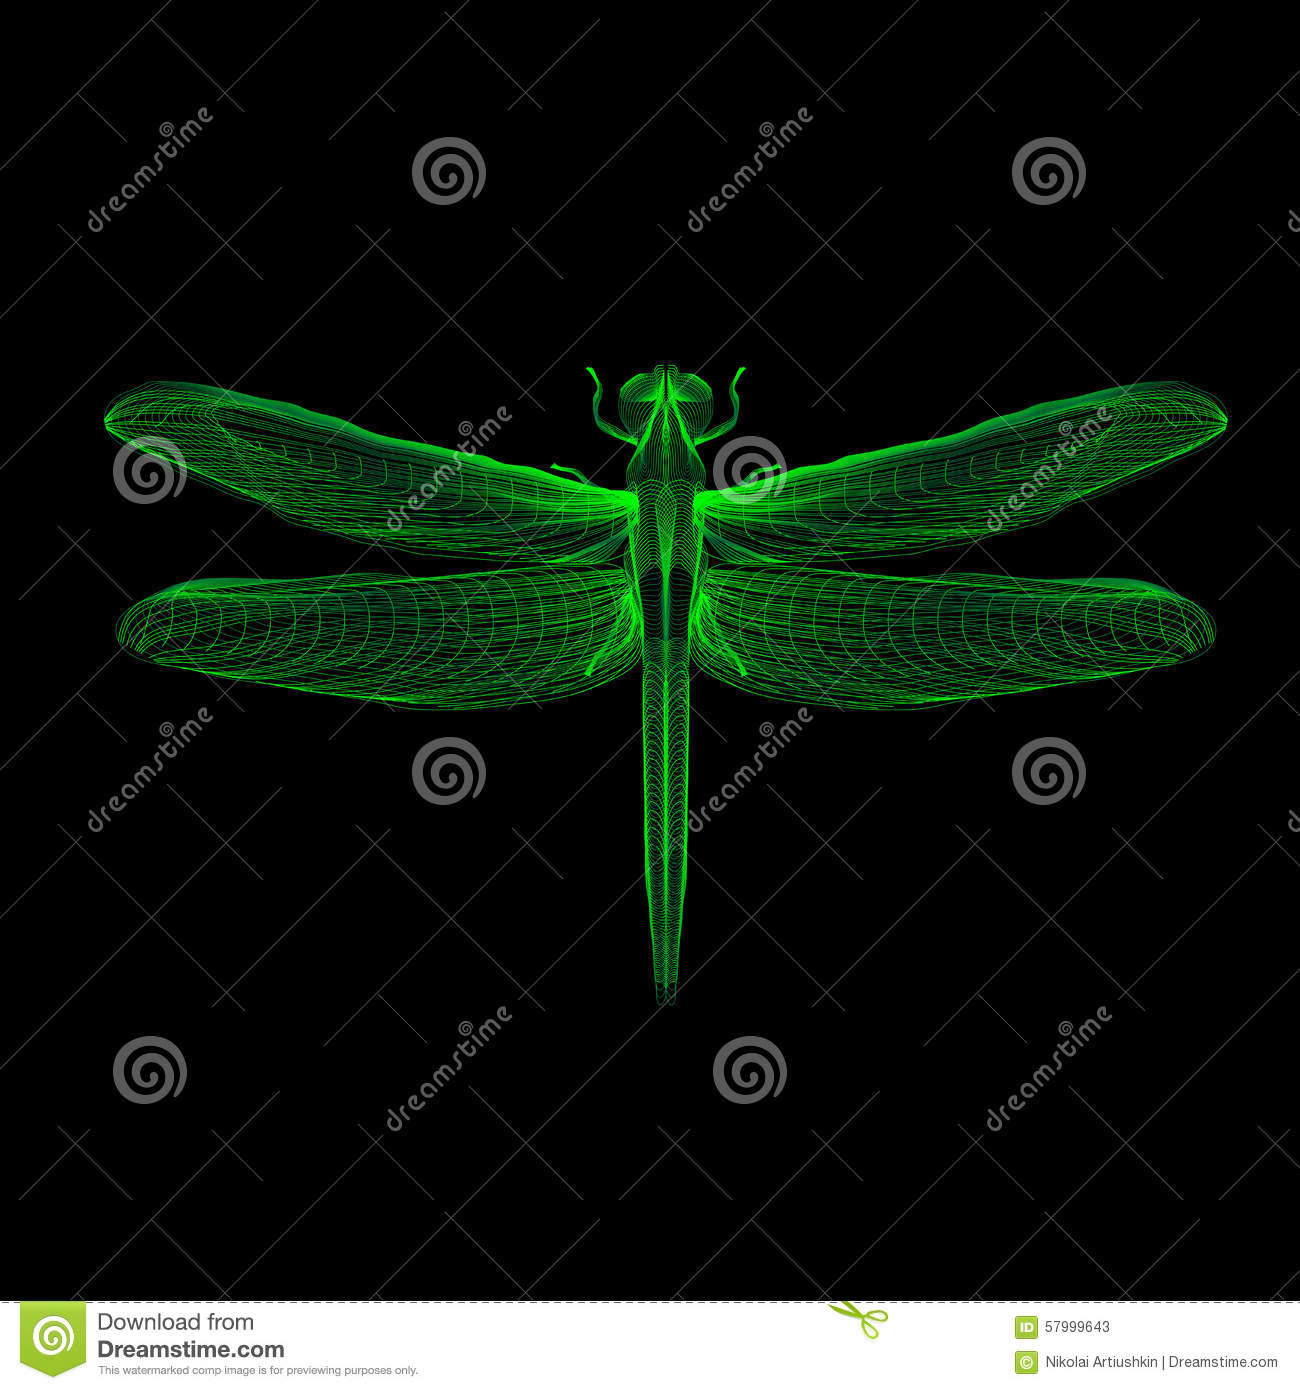 dragonfly 3d style vector illustration for print stock vector